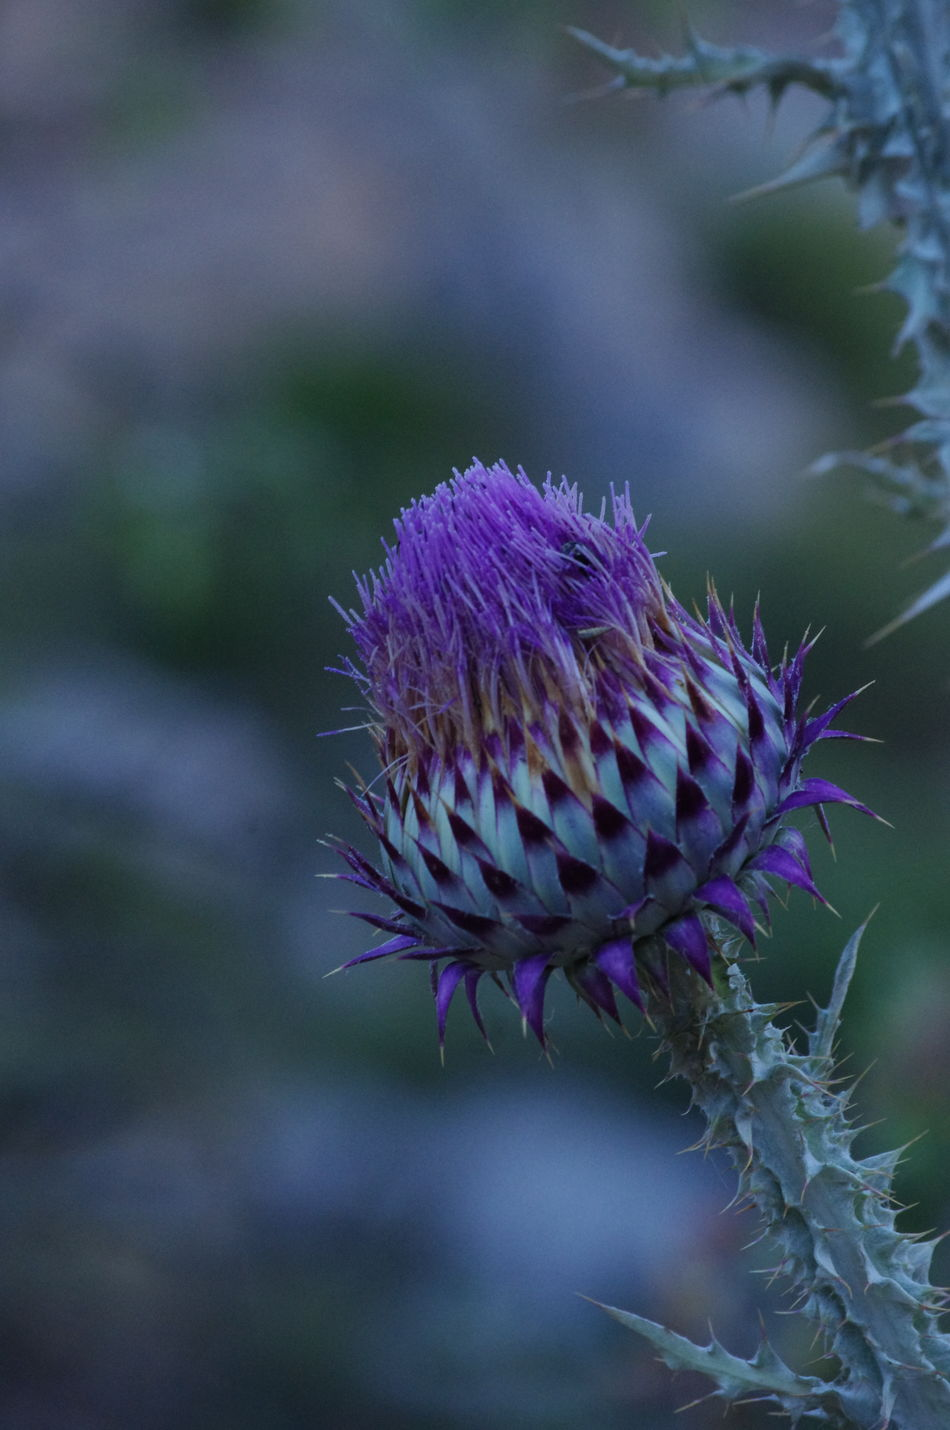 Spikey Attitude Weed Pretty Weed Vibrant Colors Painful To Touch Deep Purple Dangerous Walking Around The Countryside Up In The Moutains of El Torcal Malaga SPAIN Watch Out Beuty In Nature Thistle Color Palette